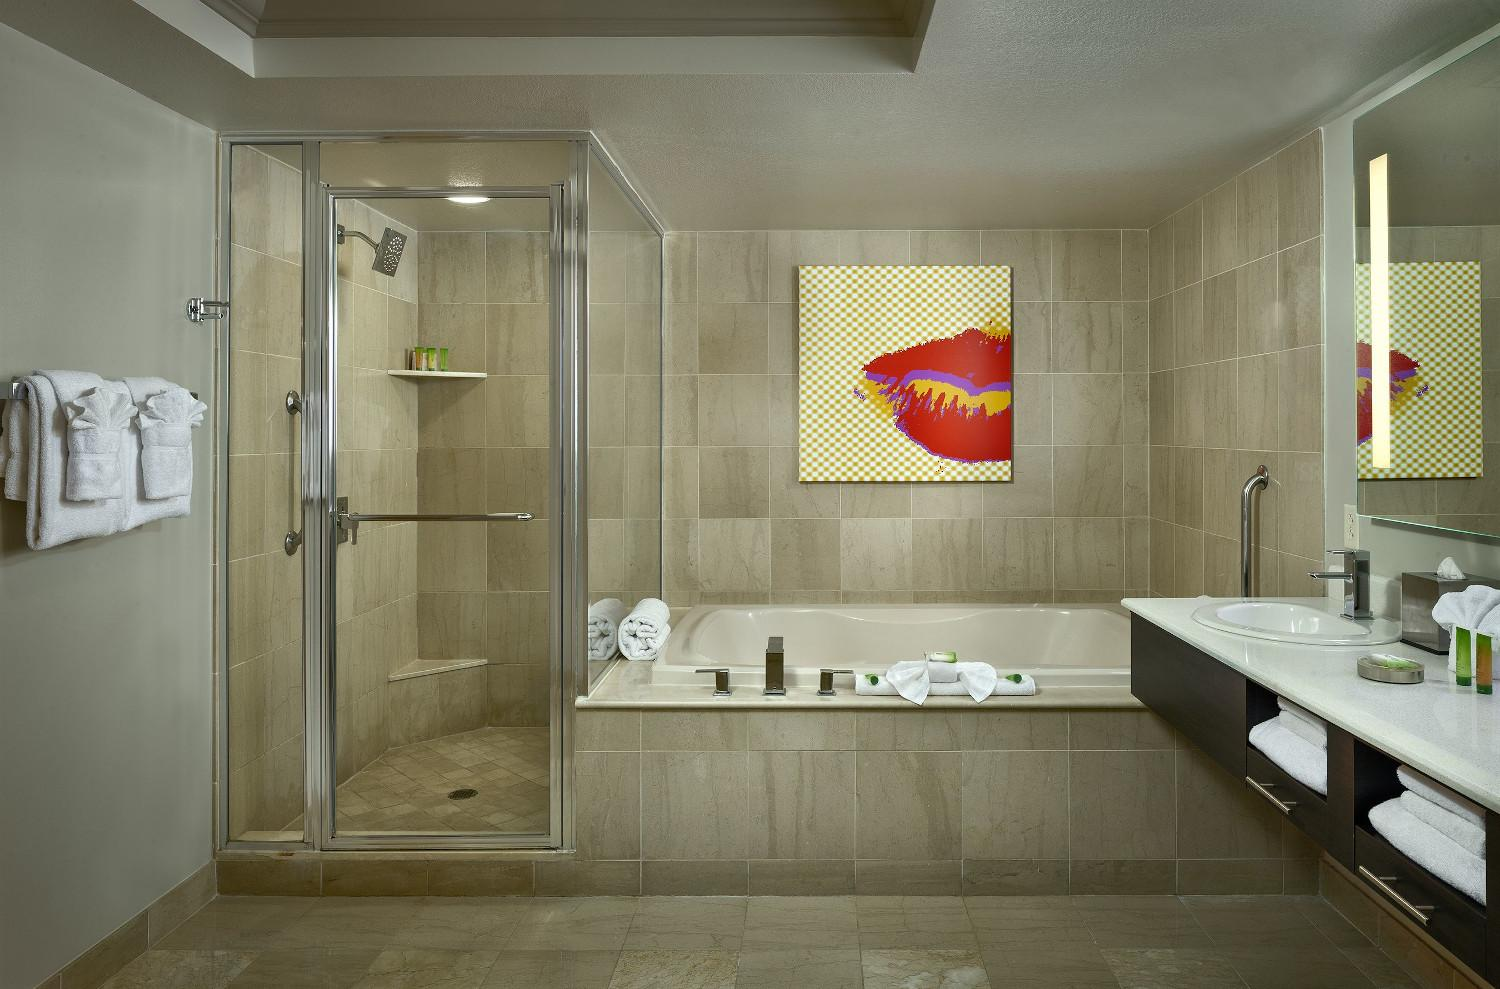 Boulevard Suite Bathroom